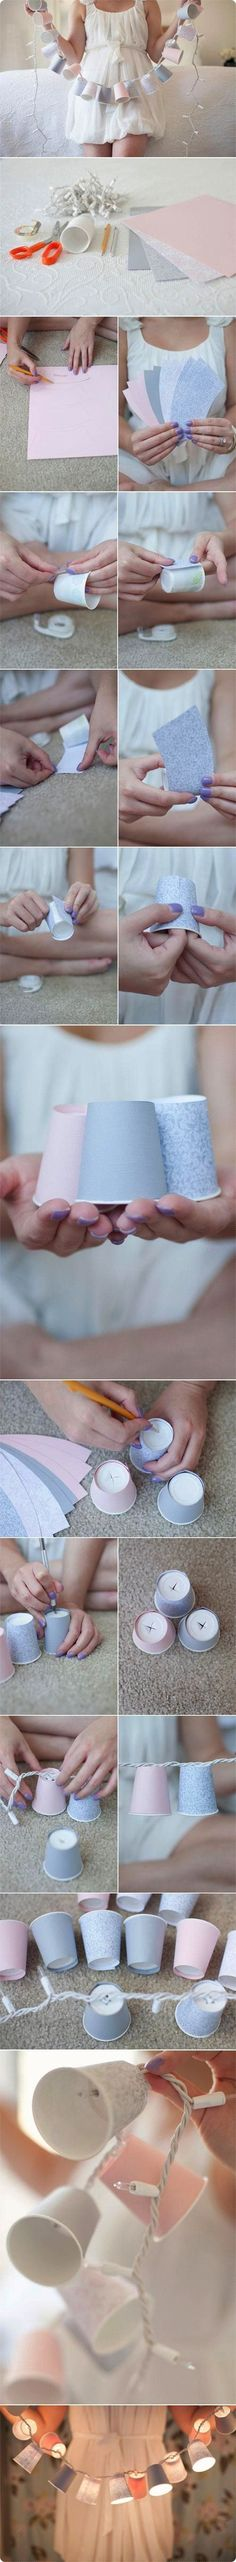 Dixie Cup string lights diy